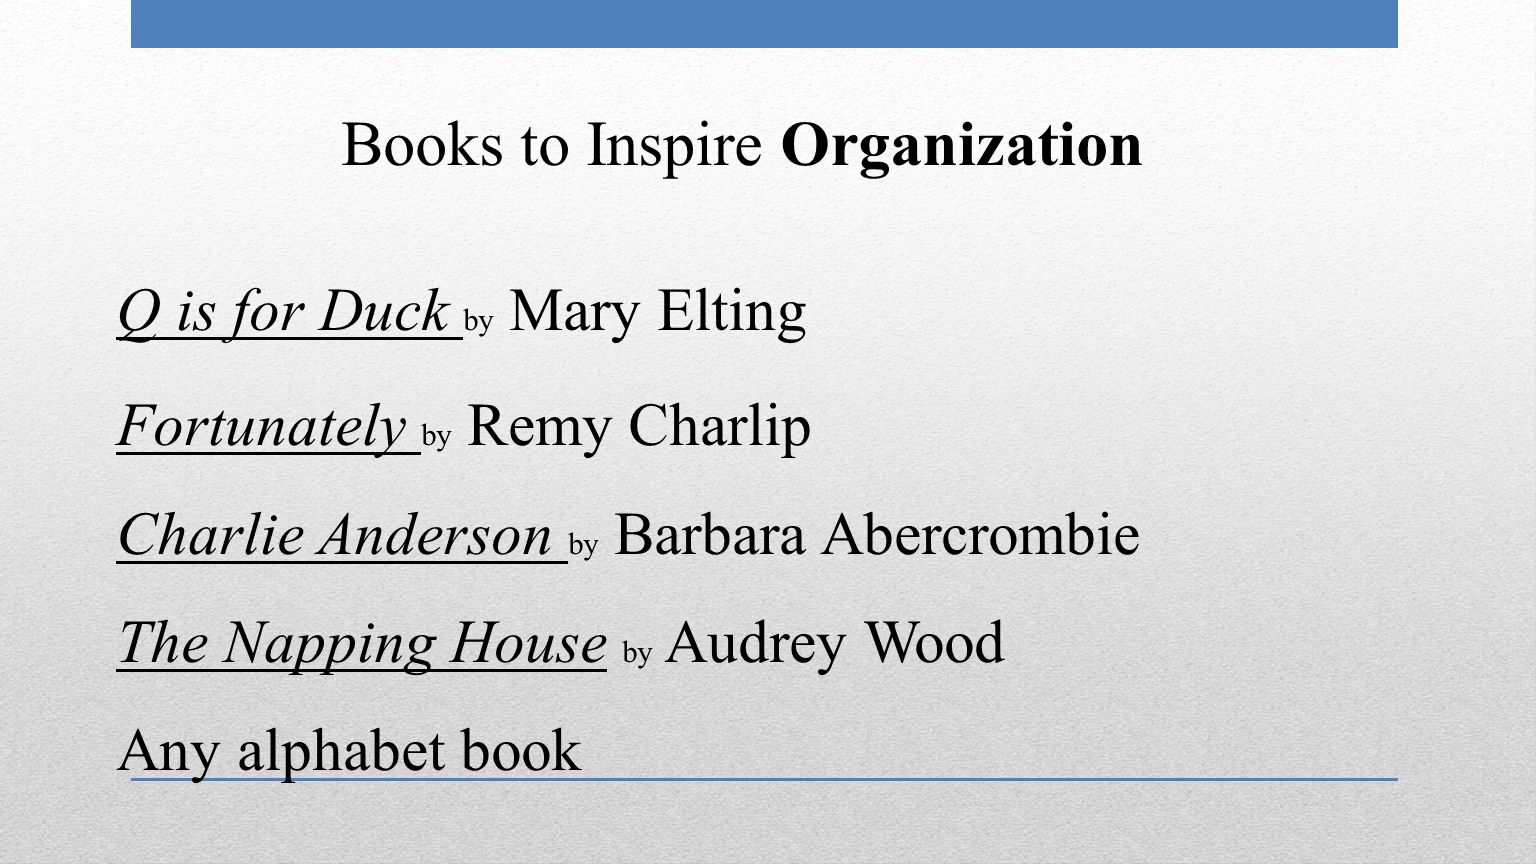 Books to Inspire Organization Q is for Duck by Mary Elting Fortunately by Remy Charlip Charlie Anderson by Barbara Abercrombie The Napping House by Audrey Wood Any alphabet book